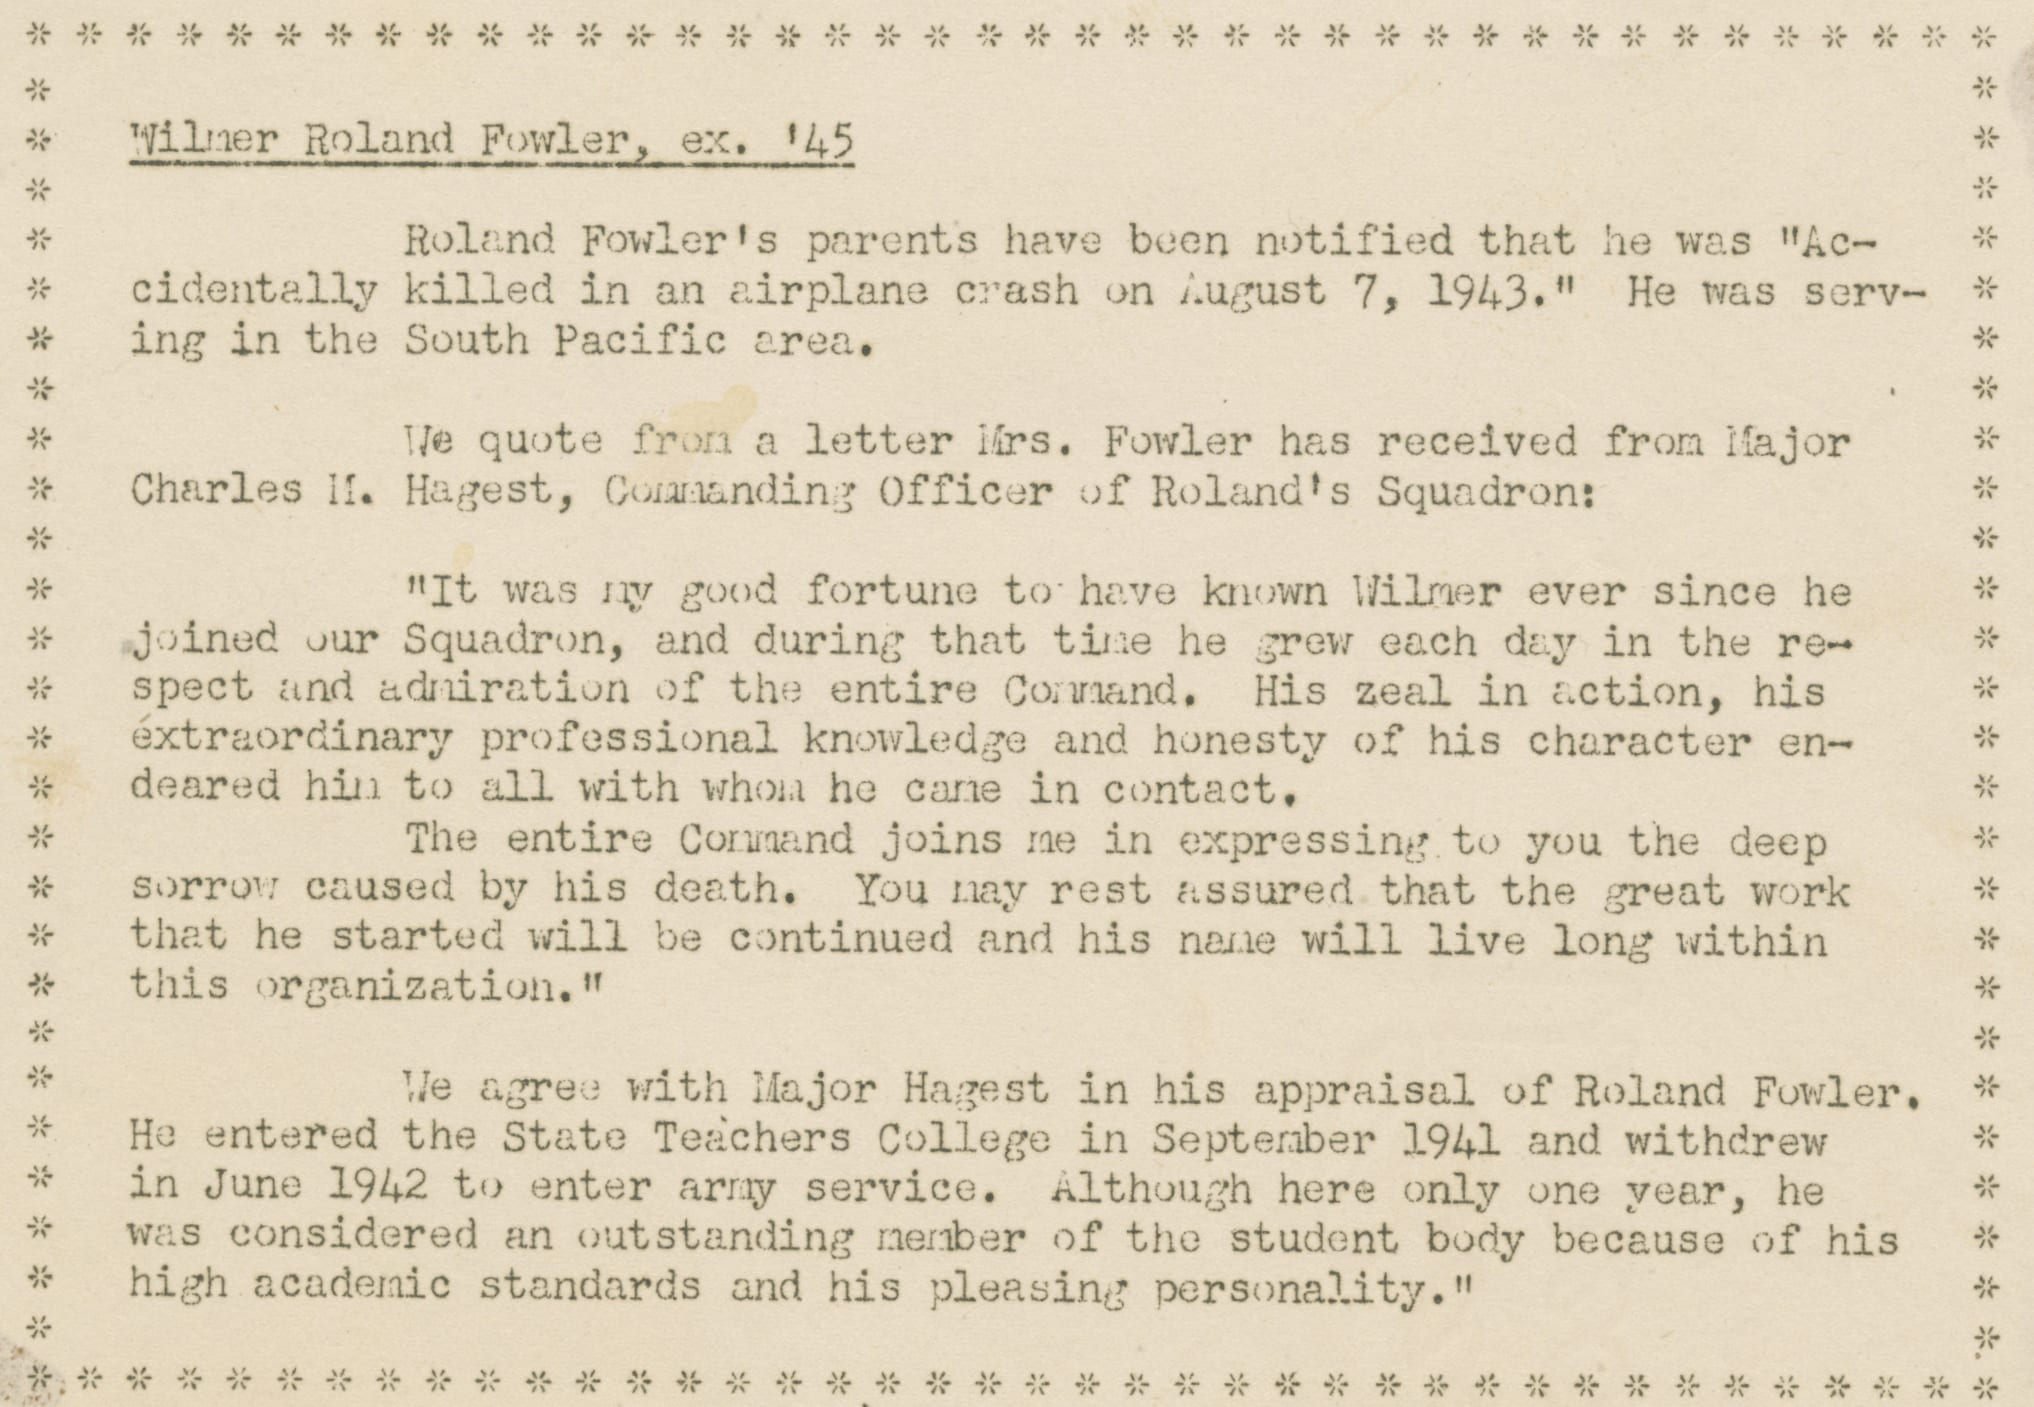 """Image from newsletter. It reads: Wilmer Roland Fowler, ex. '45. Roland Fowler's parents have been notified that he was """"Accidentally killed in an airplane crash on August 7, 1943."""" He was serving in the South Pacific area. We quote from a letter Mrs. Fowler received from Charles M. Hagest, Commanding Officer of Roland's Squadron: """"It was my good fortune to have known Wilmer ever since he joined our Squadron, and during that time he grew each day in the respect and admiration of the entire Command. His zeal in action, his extraordinary professional knowledge and honesty of his character endeared him to all with whom he came in contact. The entire Command joins me in expressing to you the sorrow caused by his death. You may rest assured that the great work that he started will be continued and his name will live long within this organization."""" We agree with Major Hagest in his appraisal of Roland Fowler. He entered the State Teachers College in September 1941 and withdrew in June 1942 to enter army service. Although here only one year, he was considered and outstanding member of the student body because of his high academic standards and his pleasing personality."""